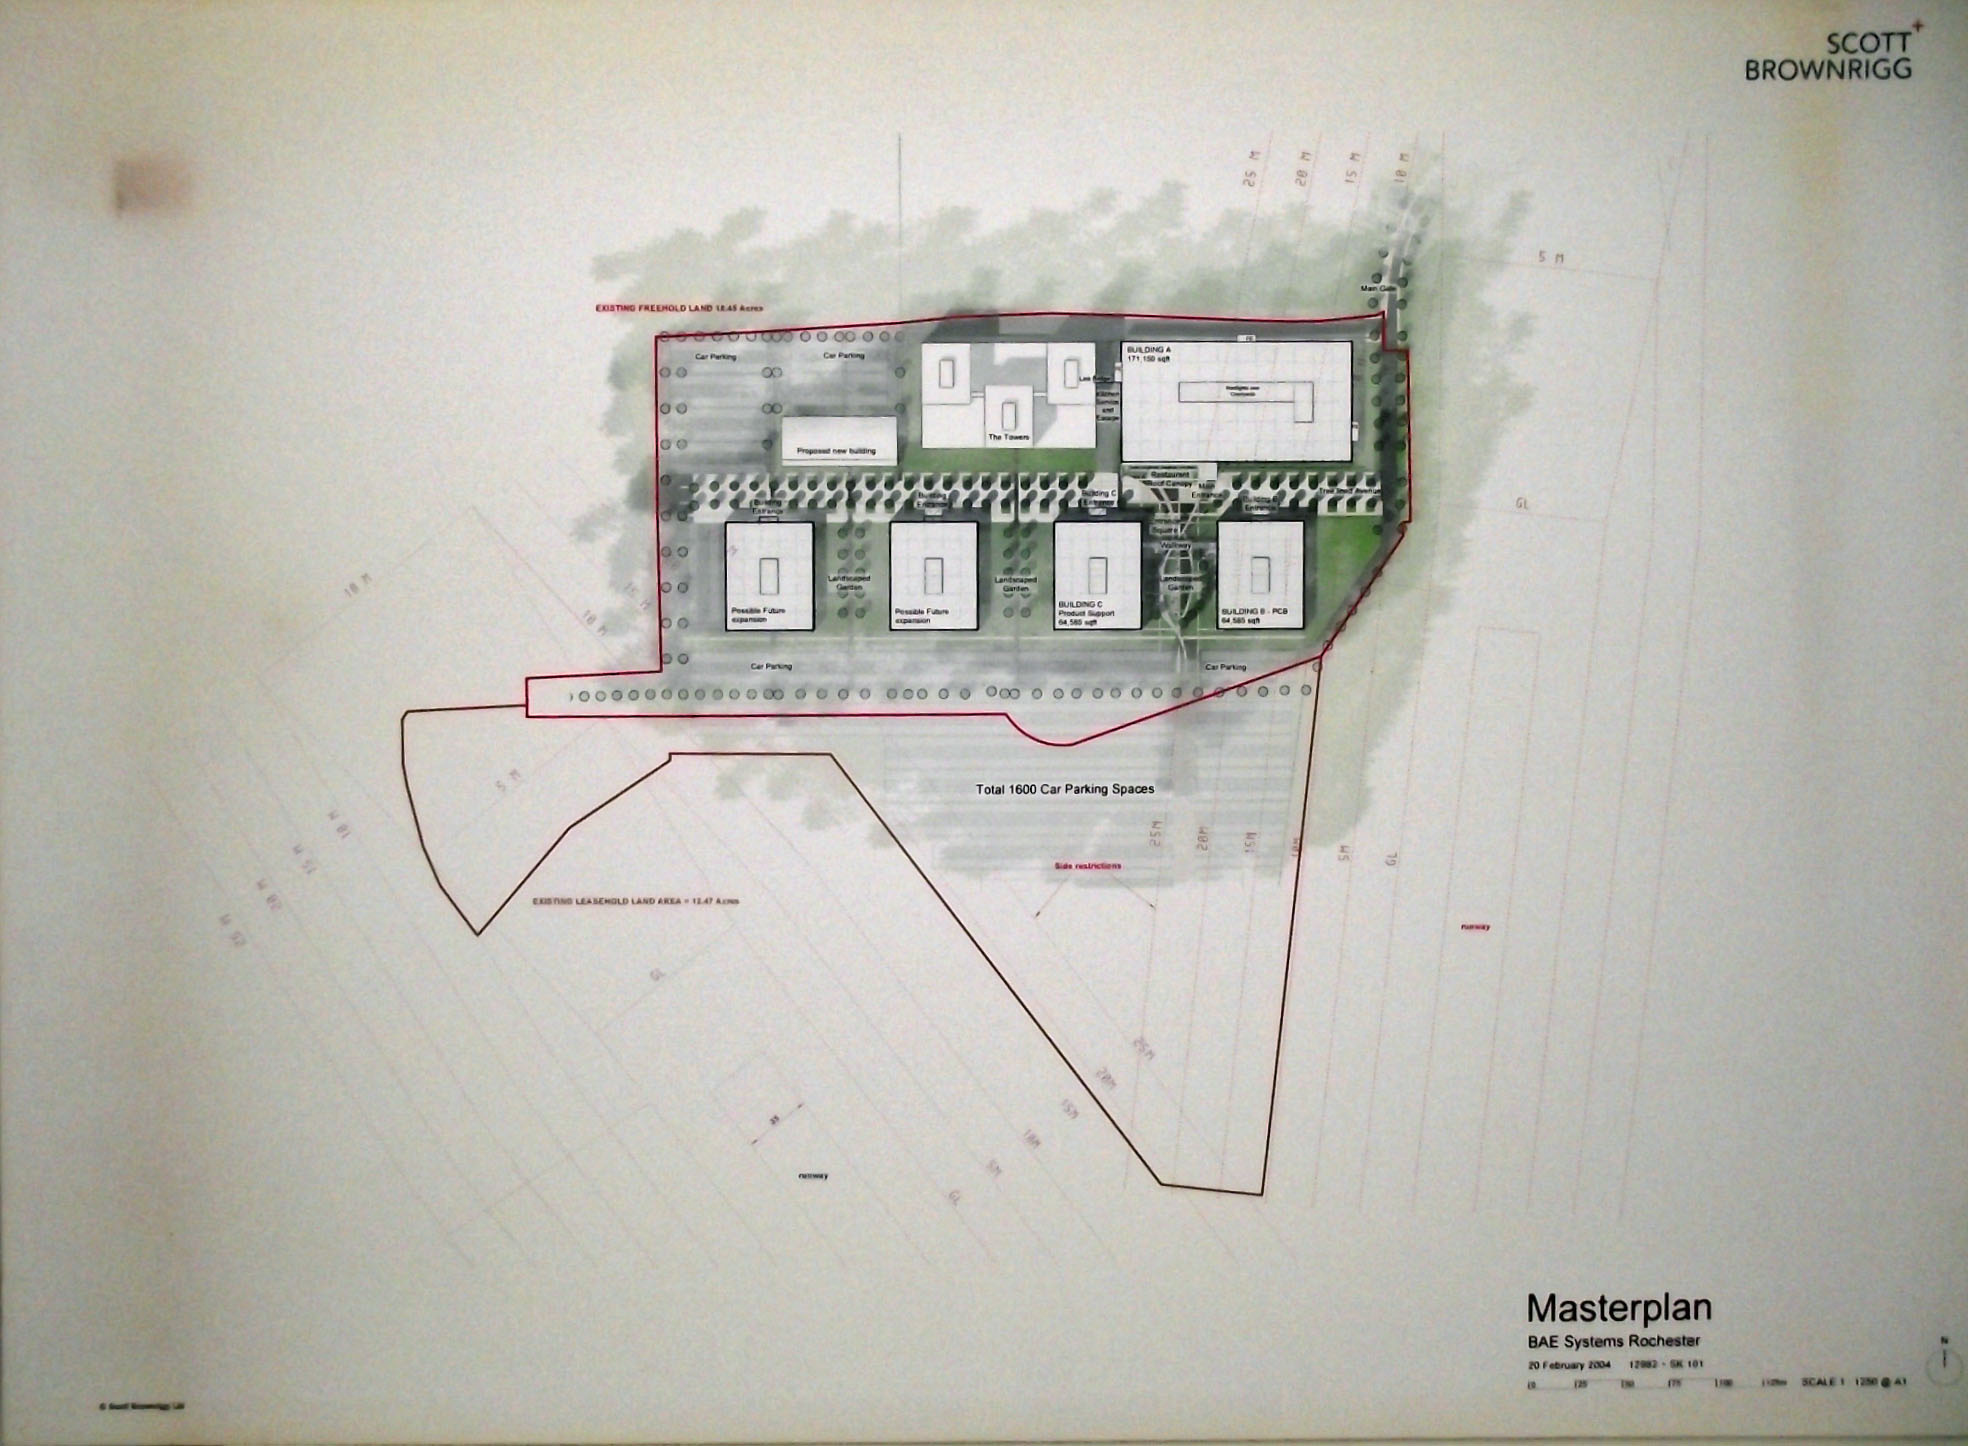 New Site Building Plan (3)